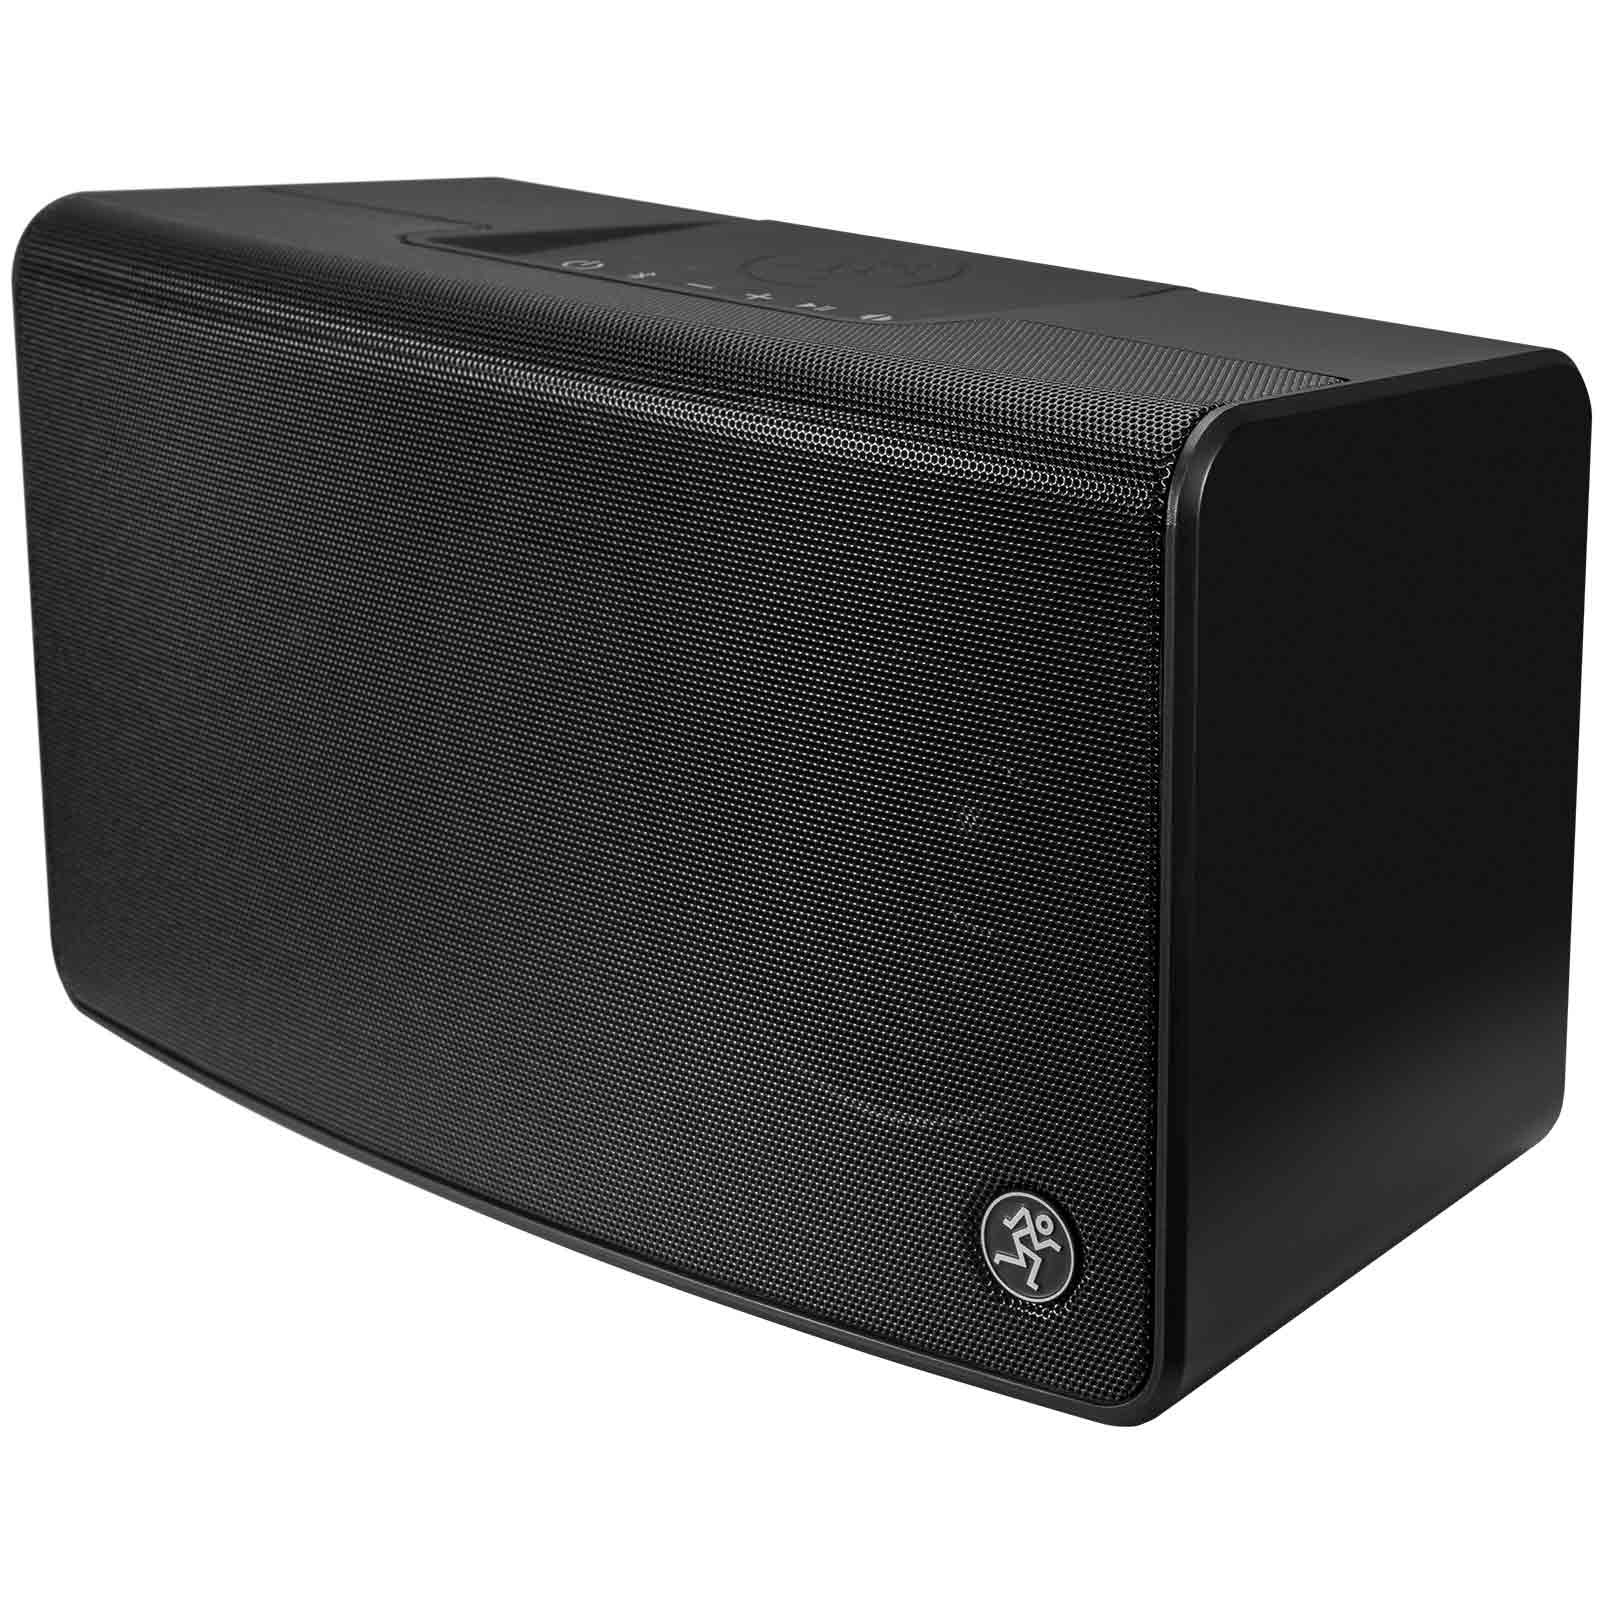 mackie freeplay home powerful portable bluetooth speaker. Black Bedroom Furniture Sets. Home Design Ideas